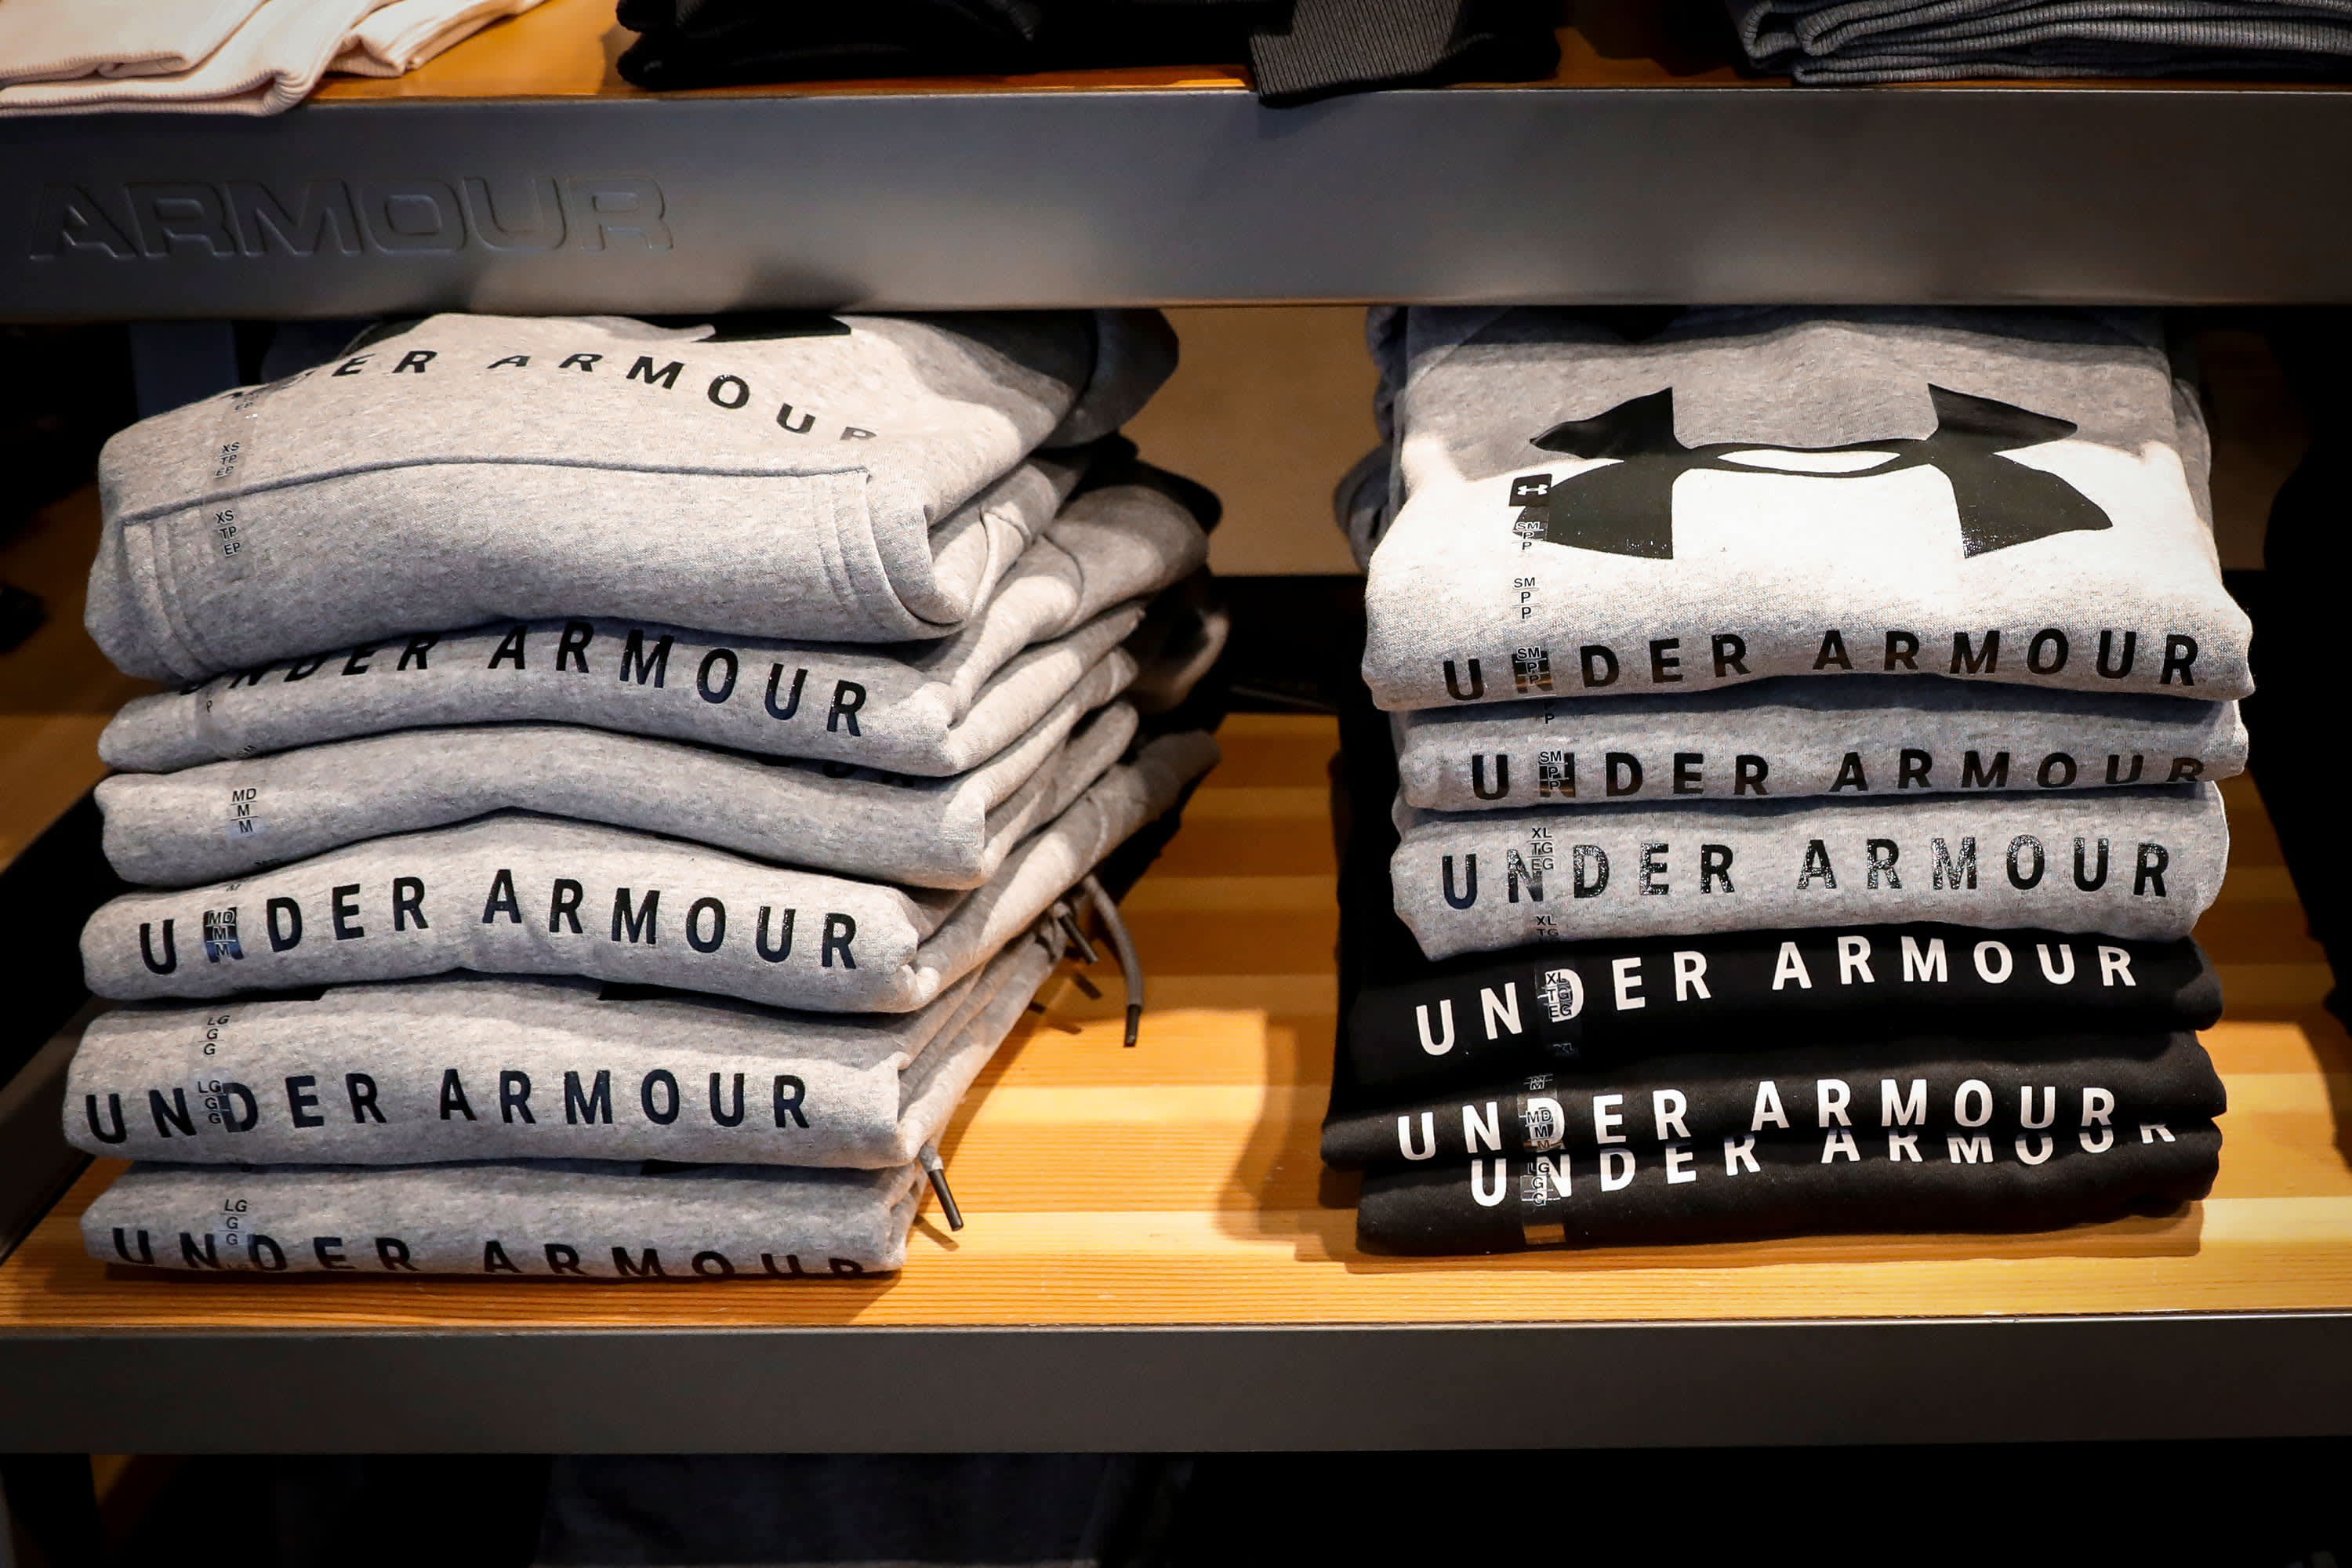 Strong online sales help stem revenue declines at Under Armour during pandemic, shares jump